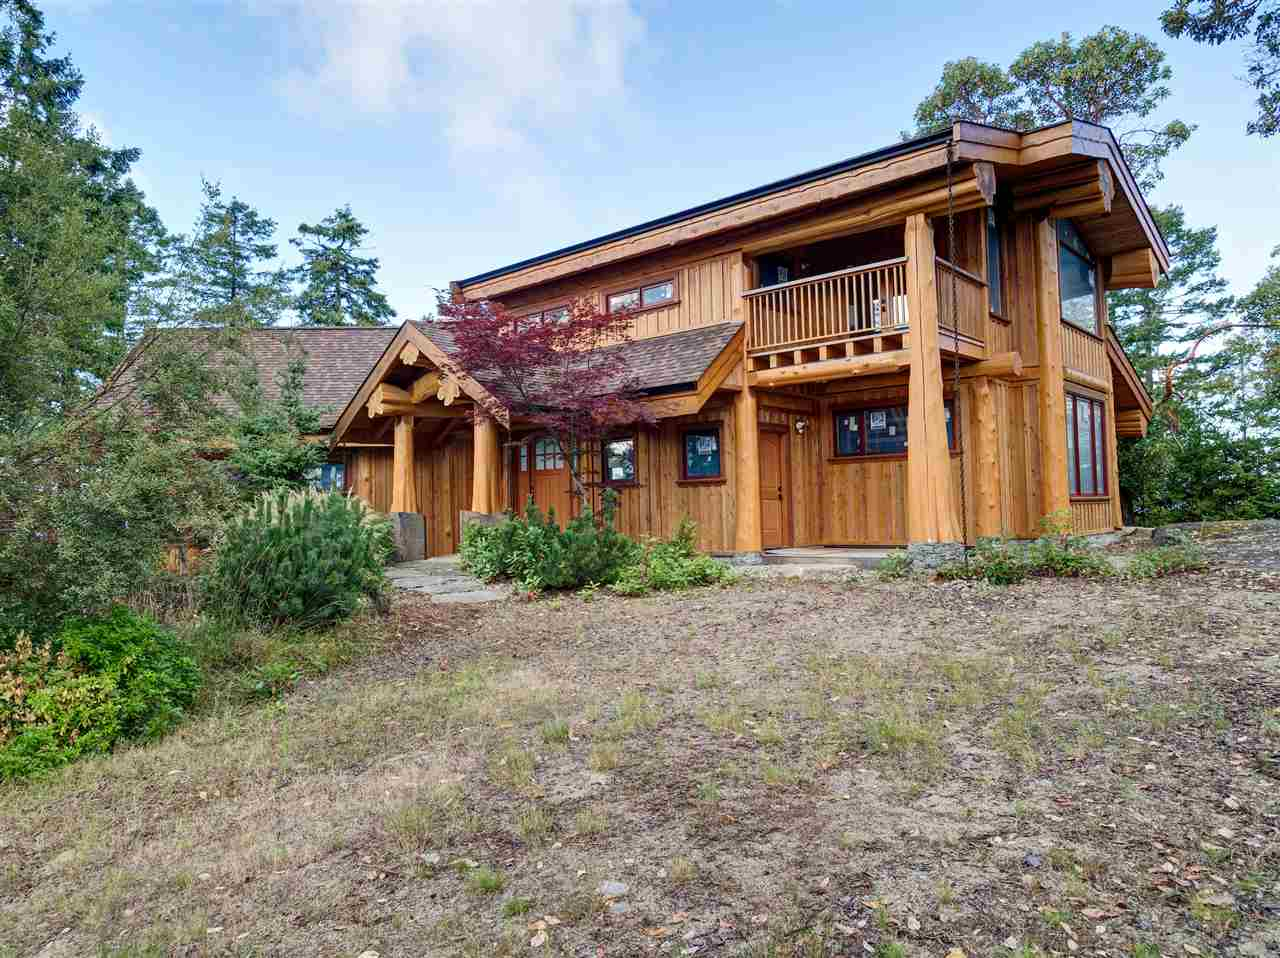 14139 MIXAL HEIGHTS ROAD - MLS® # R2288612